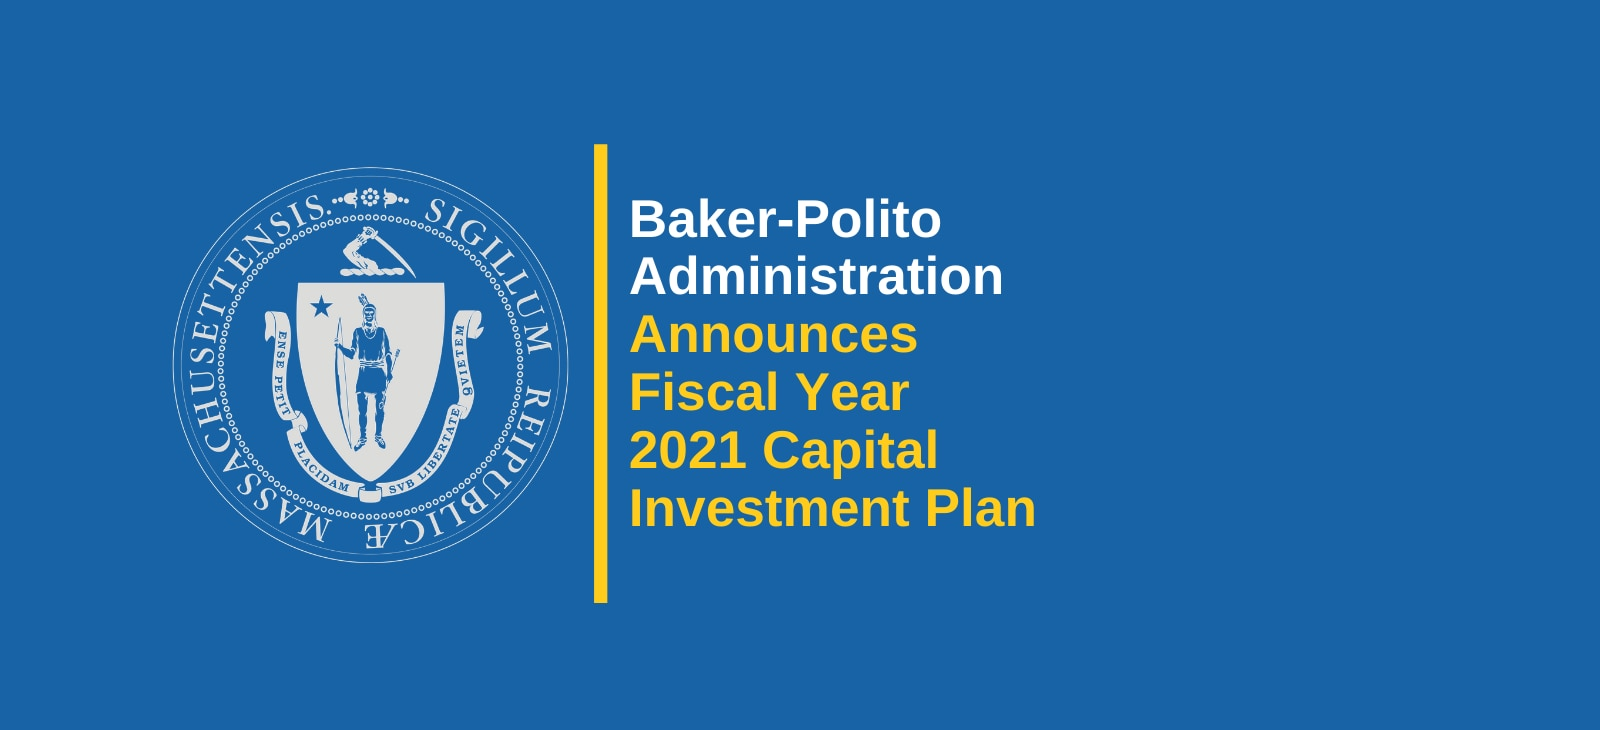 Baker-Polito Administration Announces Fiscal Year 2021 Capital Investment Plan